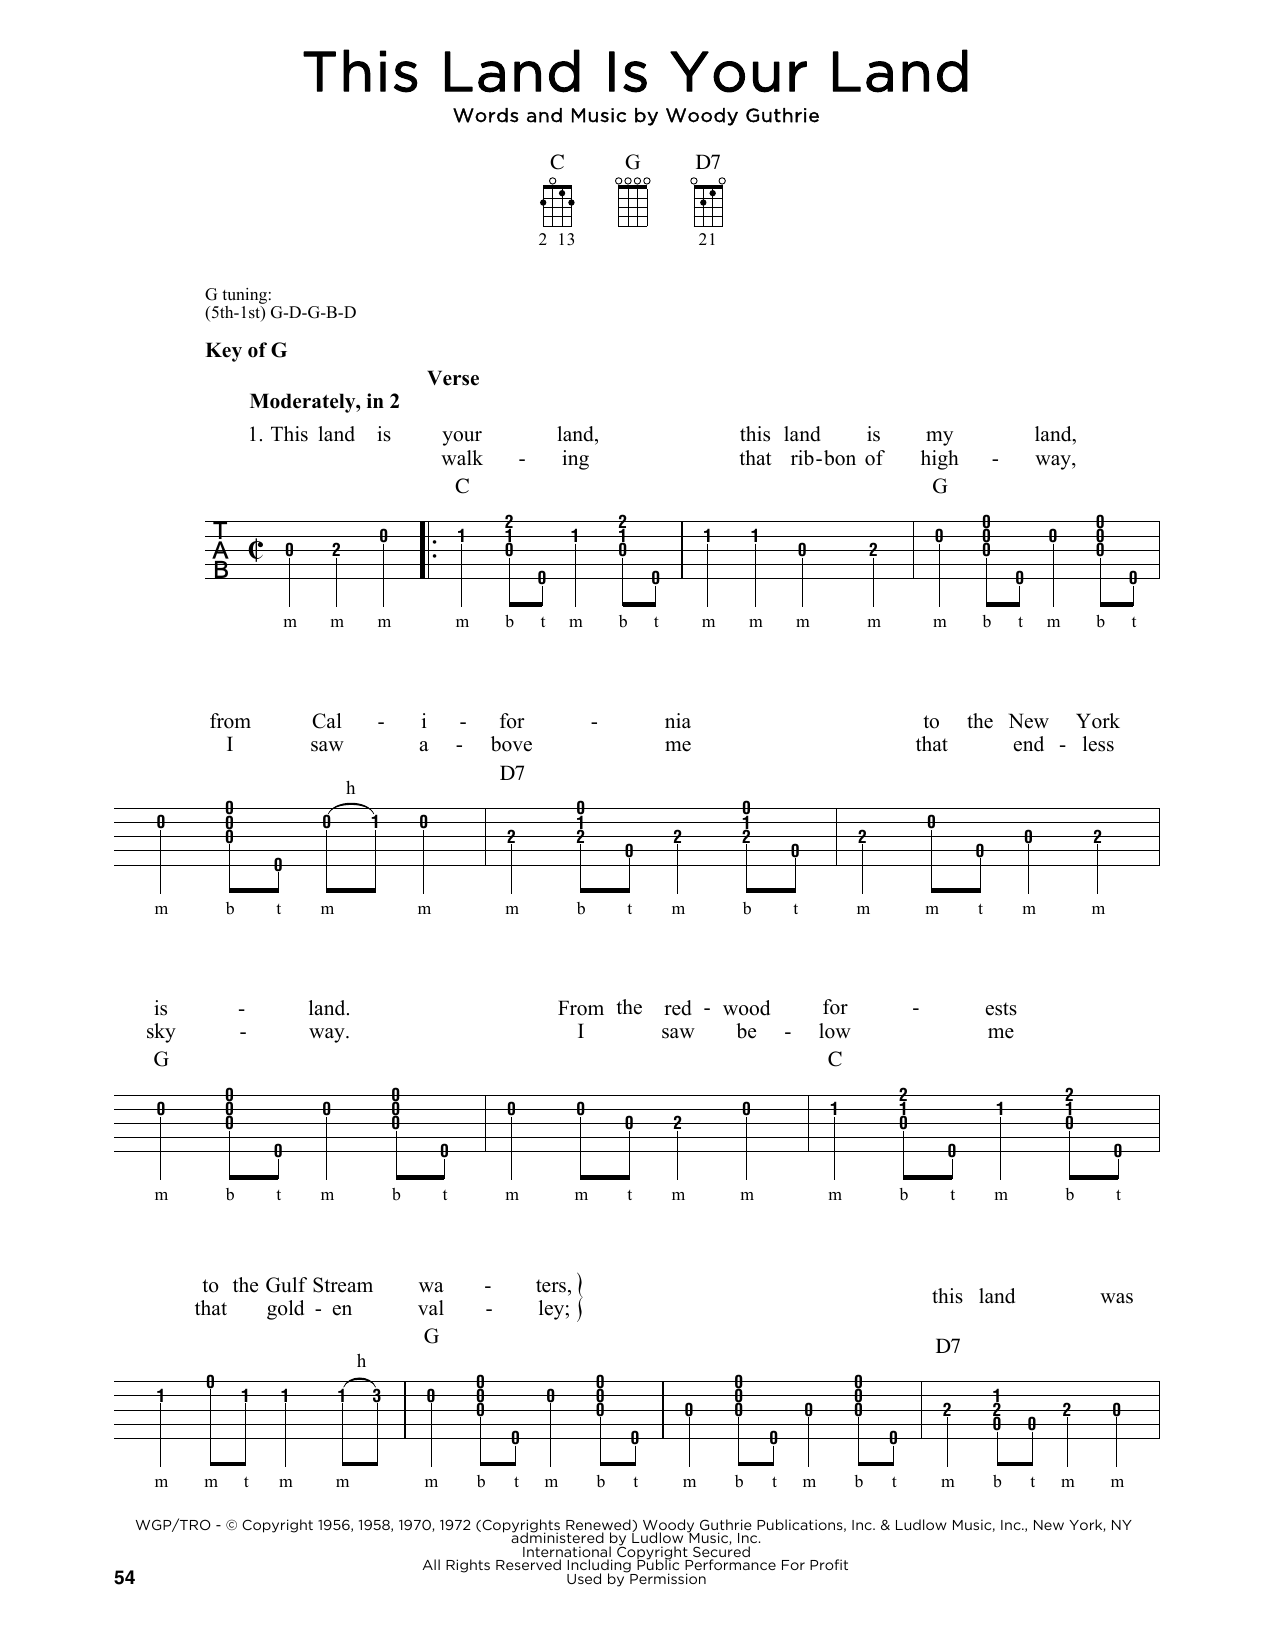 Sheet music digital files to print licensed new christy sheet music digital by merriam music hexwebz Image collections